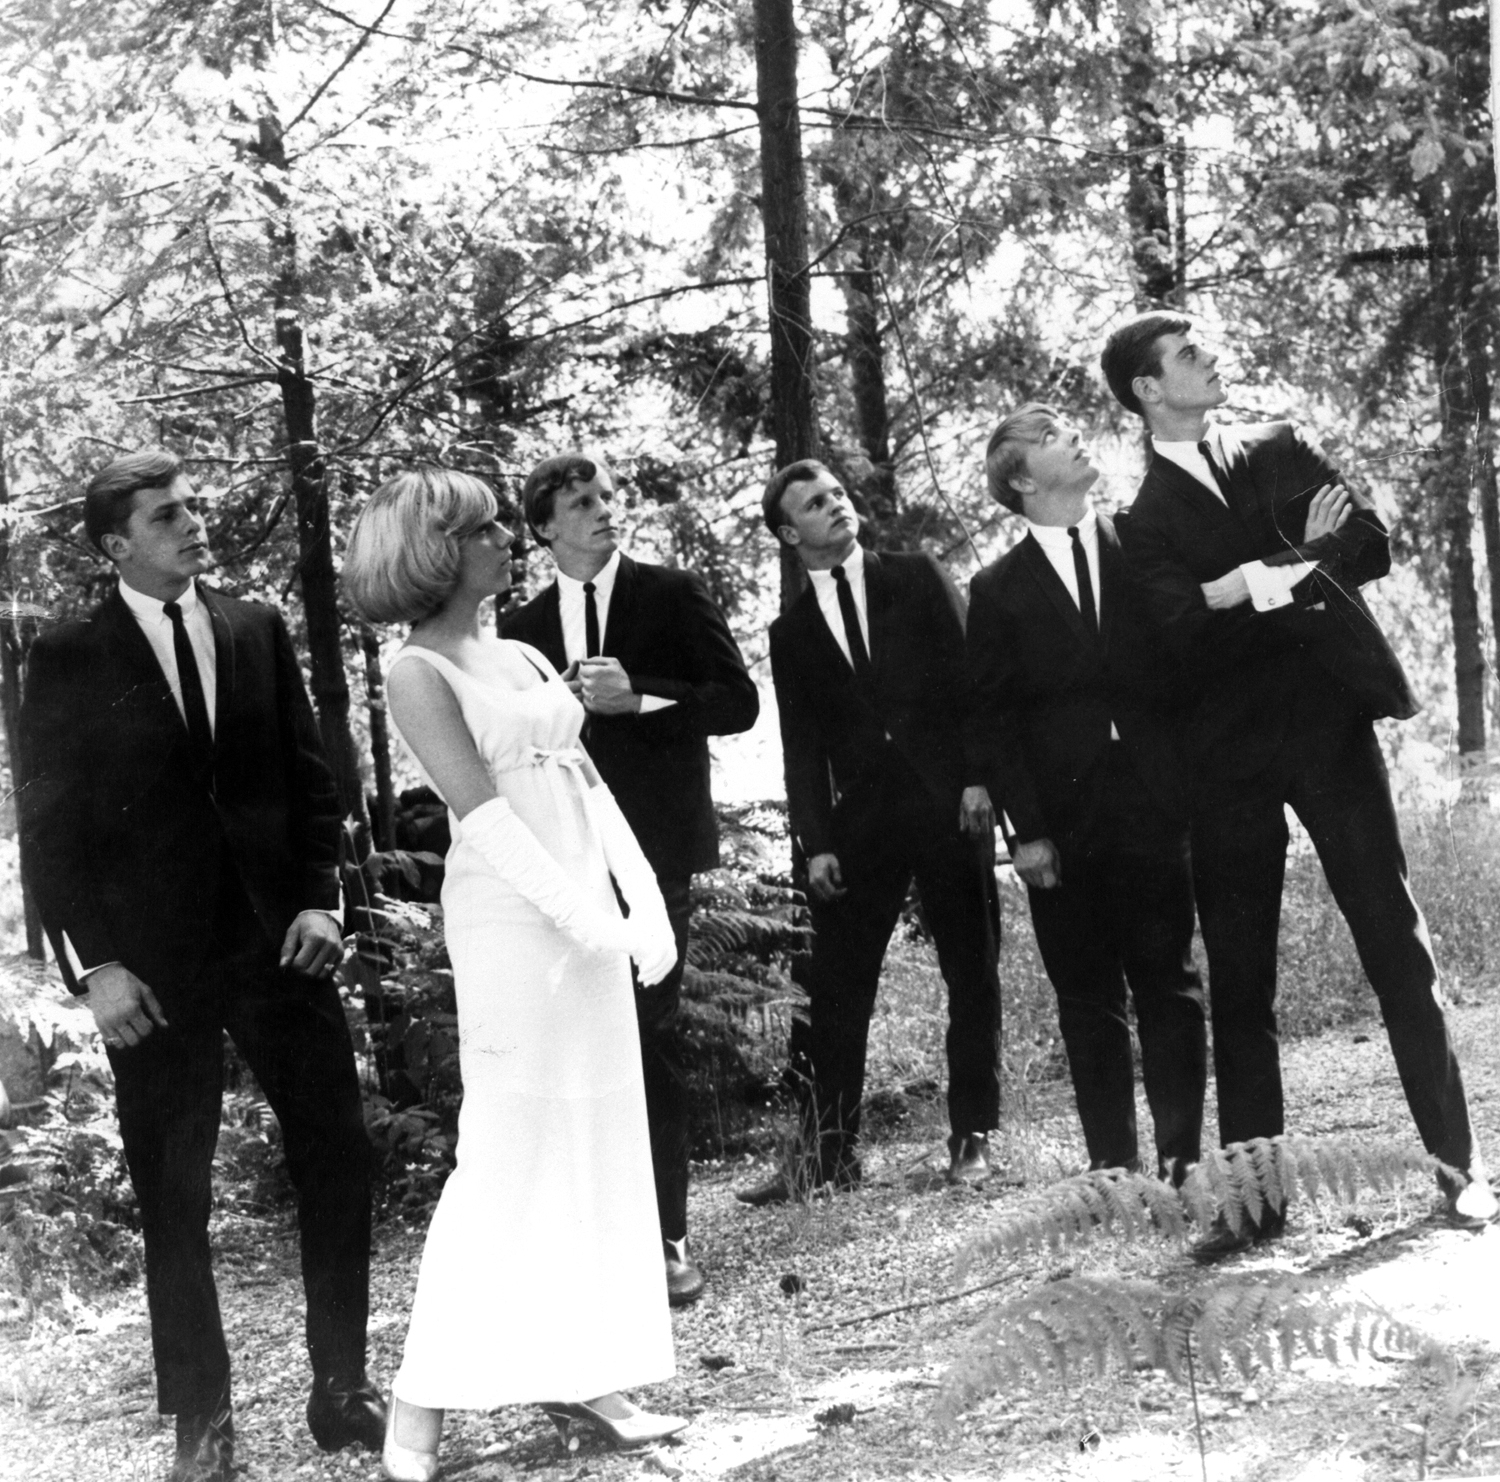 The Unusuals: L to R, Bill Capp (guitar, Kathi McDonald (vocals), Laurie Vitt (Guitar and sax), Harvey Redmond (bass), Vic Bundy (keyboards), Pat Jerns (drums)